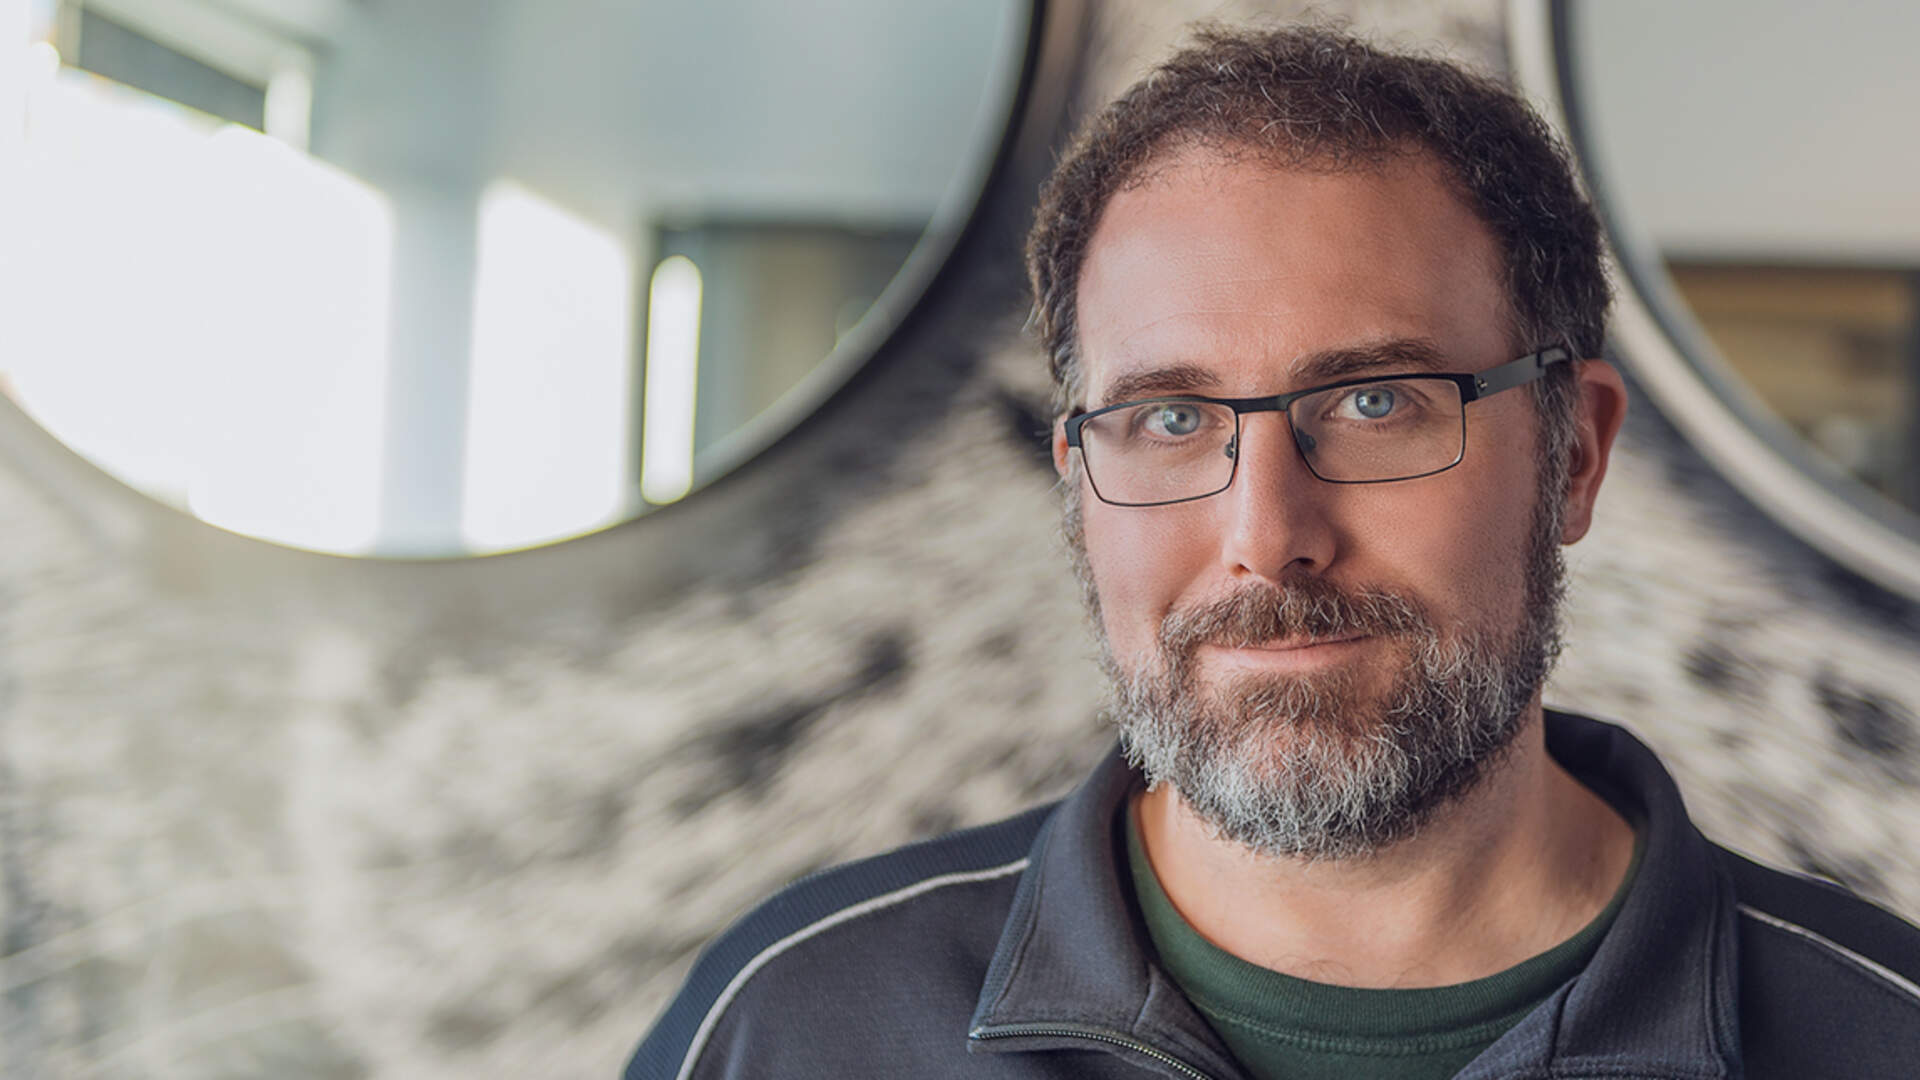 Former Dragon Age Director Opens Yellow Brick Games with BioWare, Ubisoft Veterans